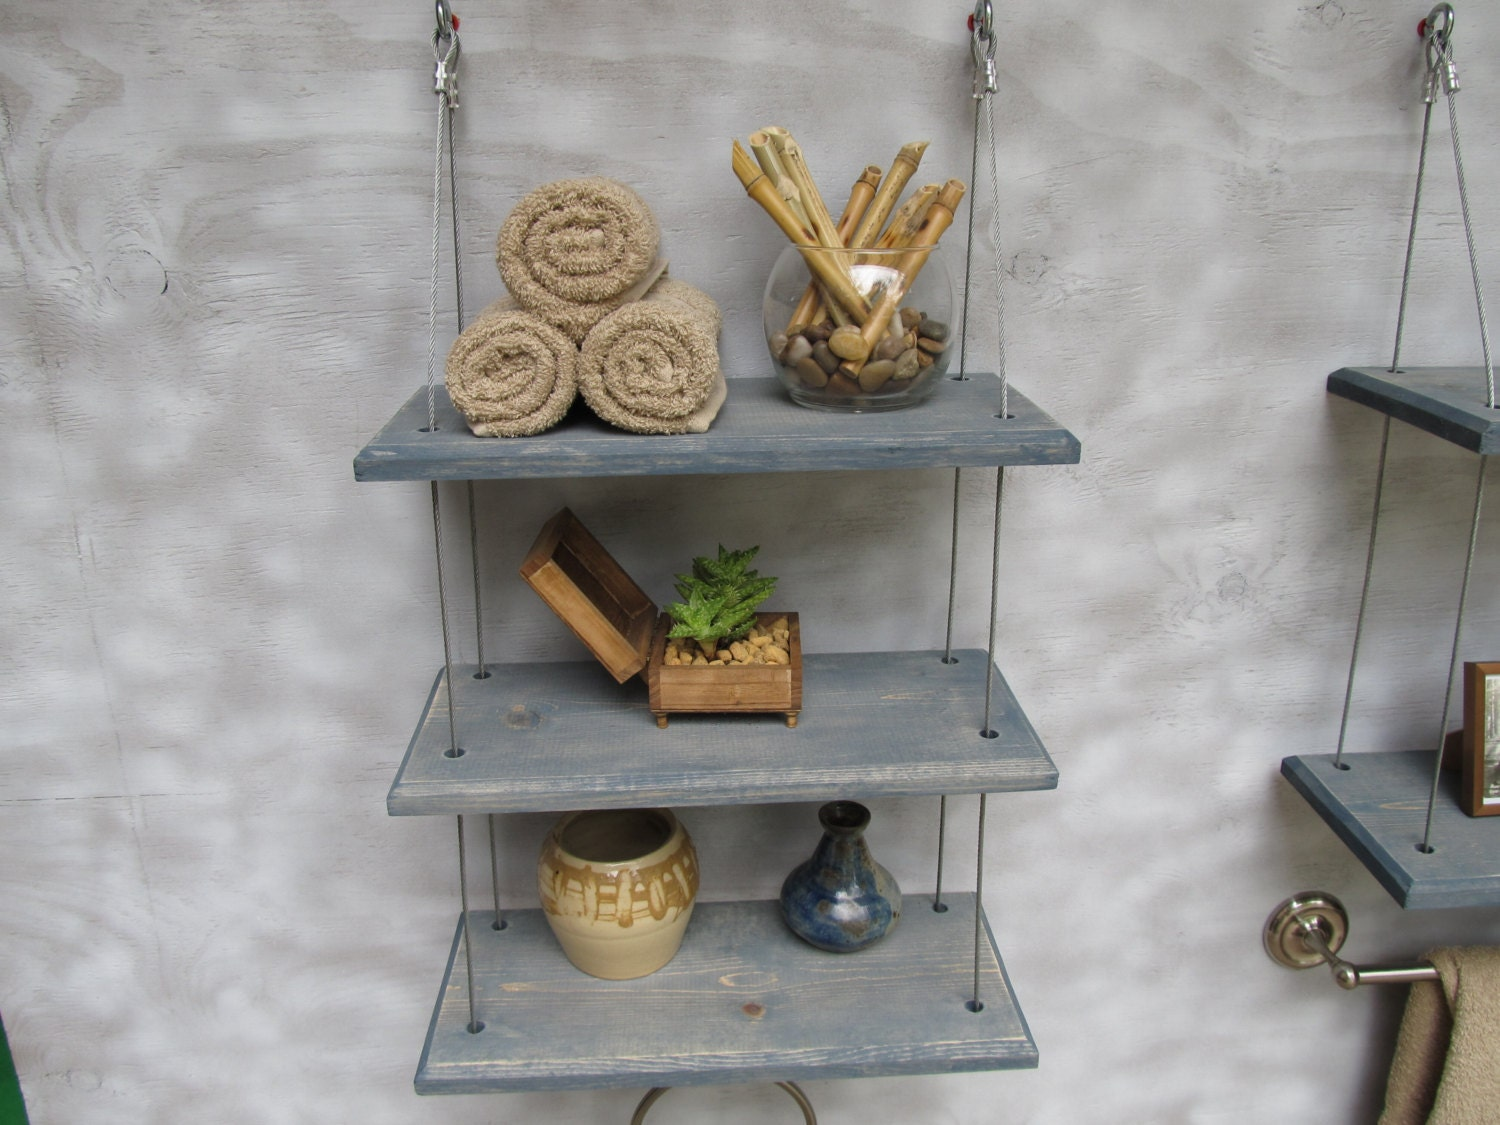 Floating Shelves Bathroom Decor : Bathroom shelves floating industrial